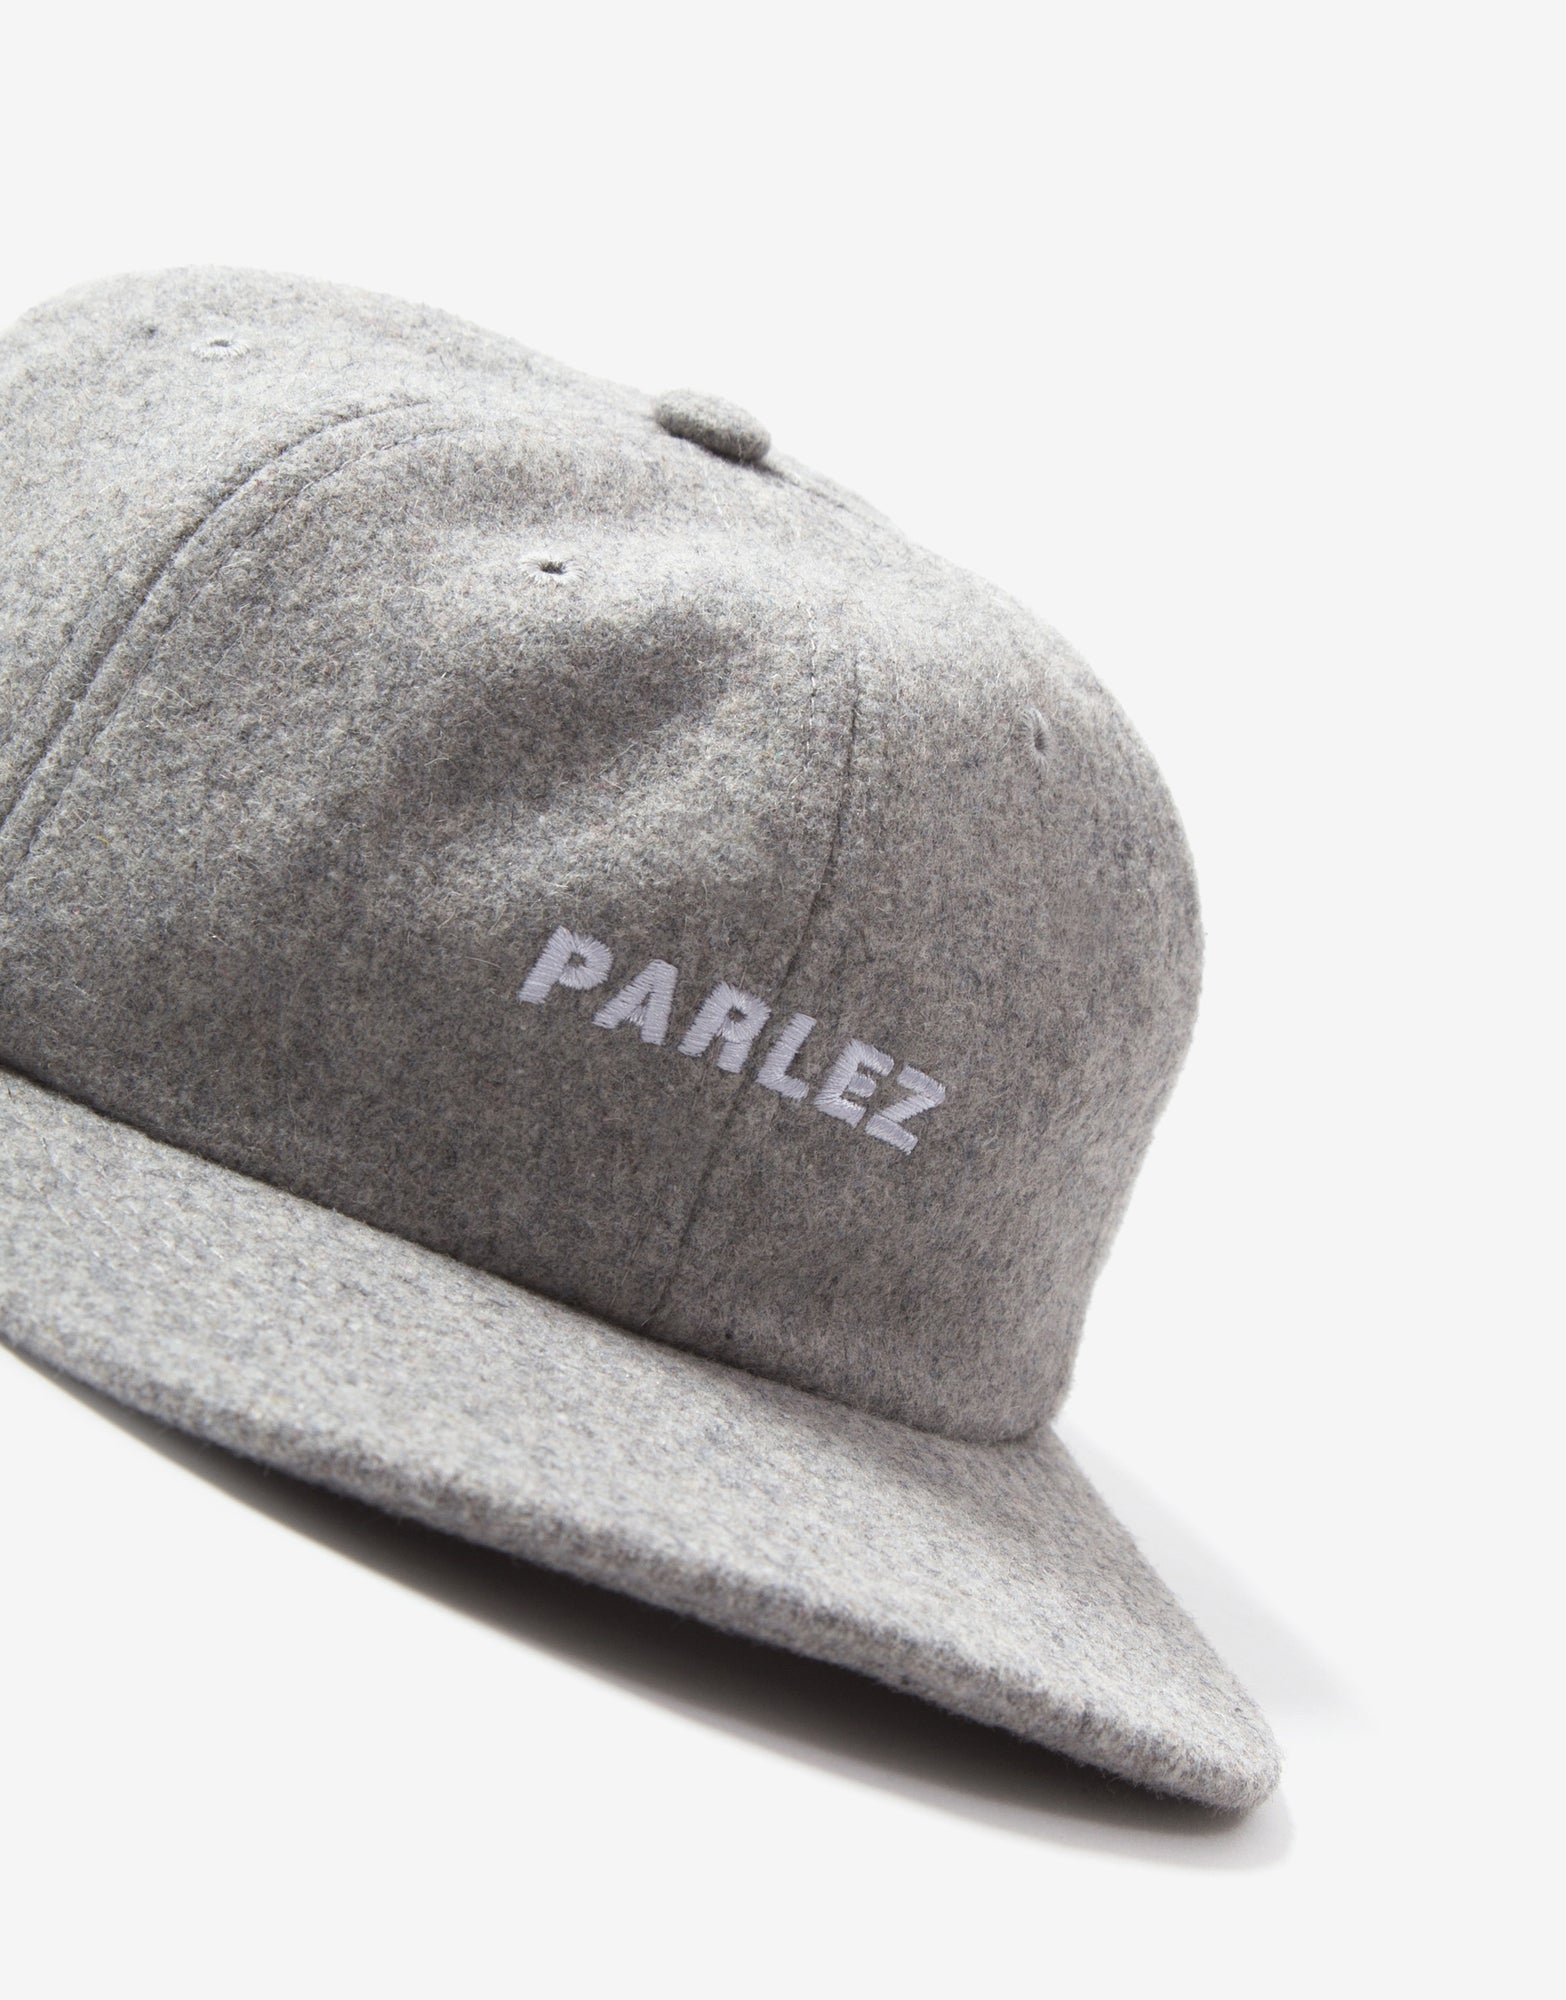 Parlez Ladsun Wool 6 Panel Cap - Heather